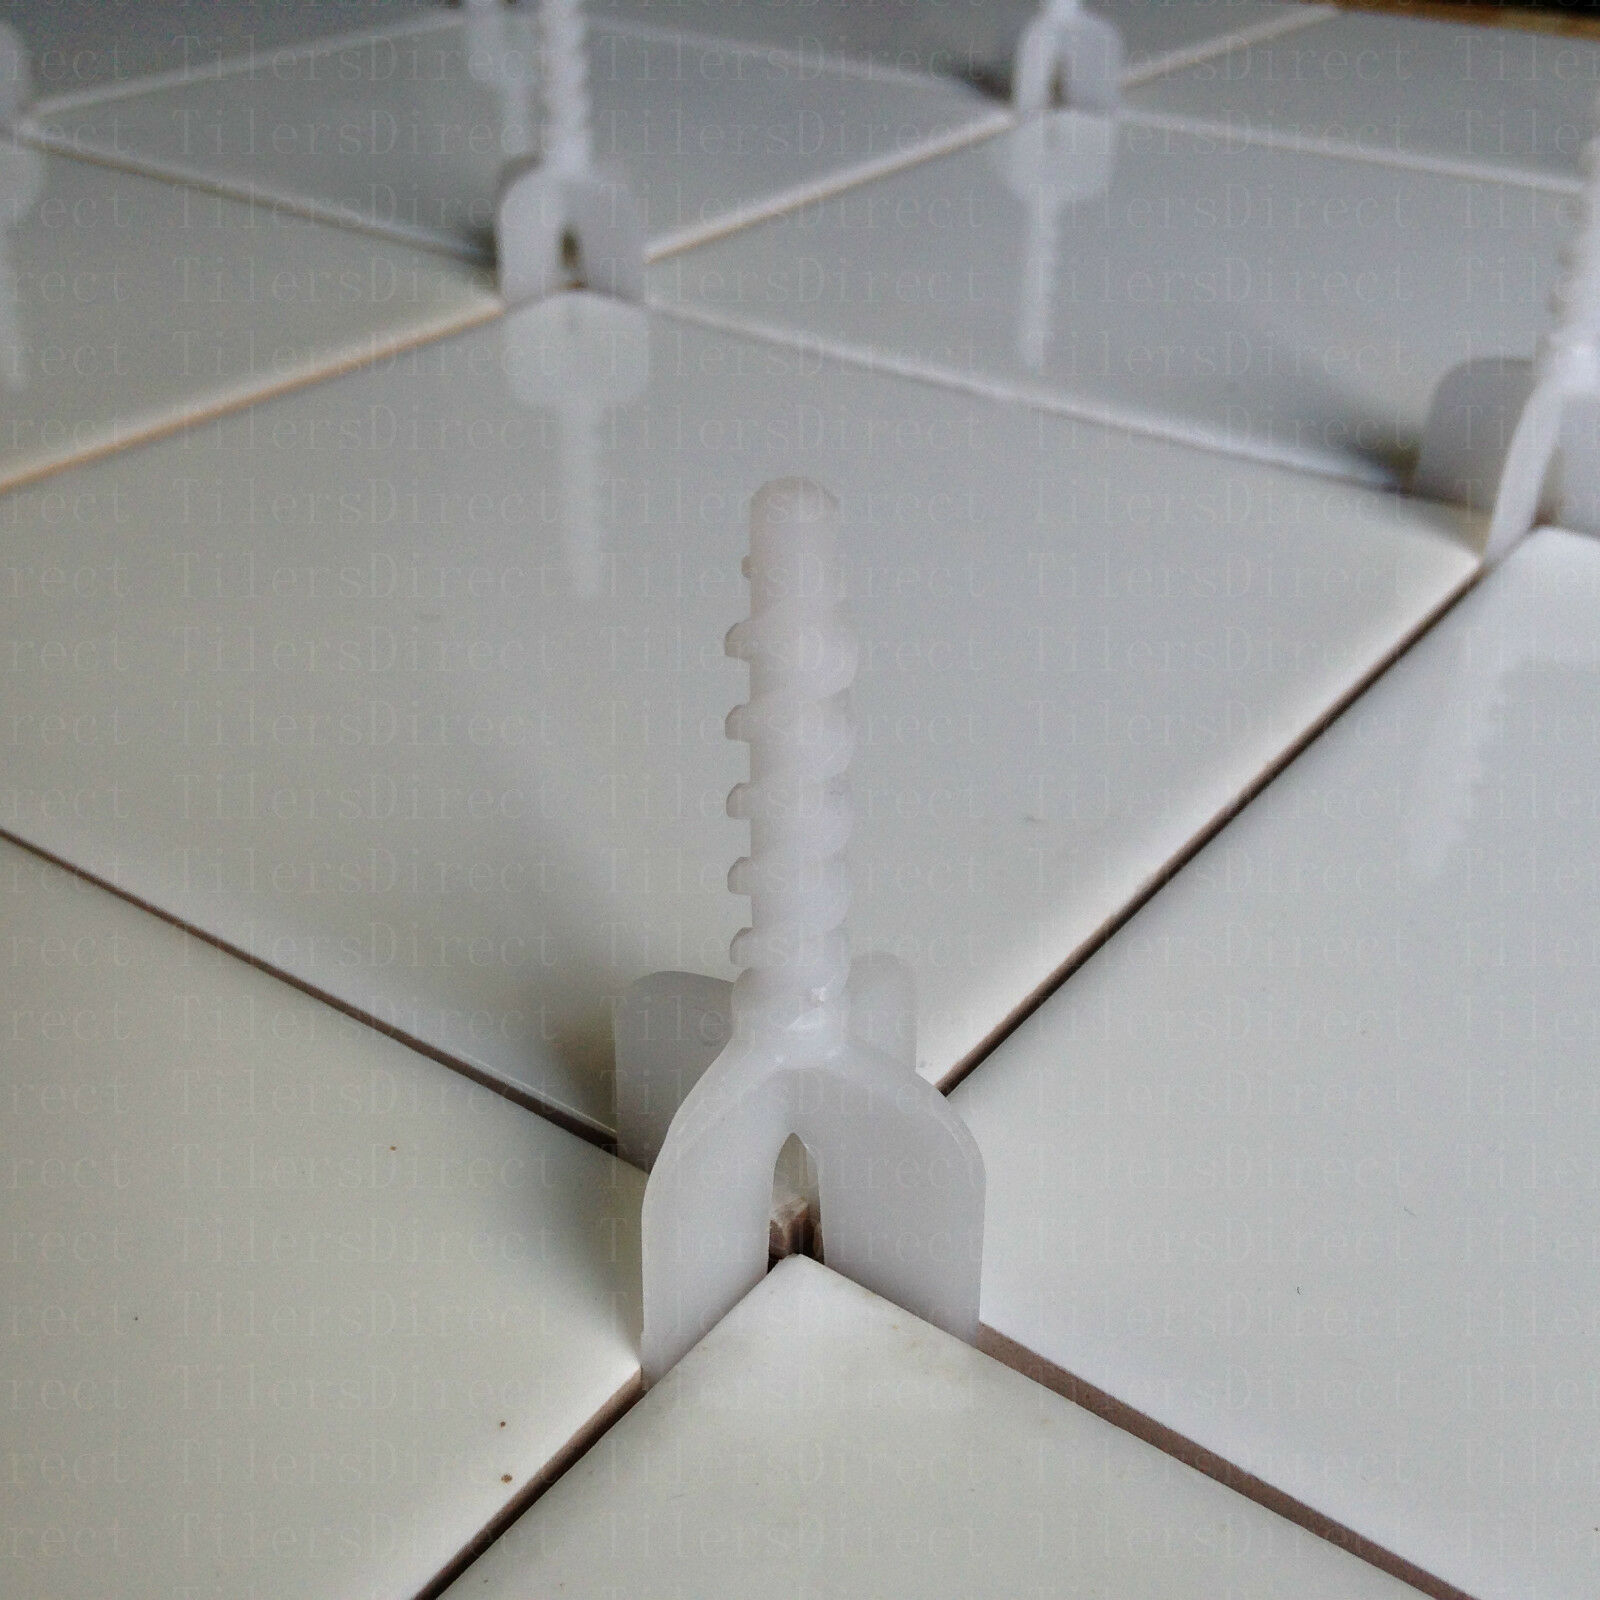 50 Caps+150 Spacers Tile Leveling System Cross Spacer ...